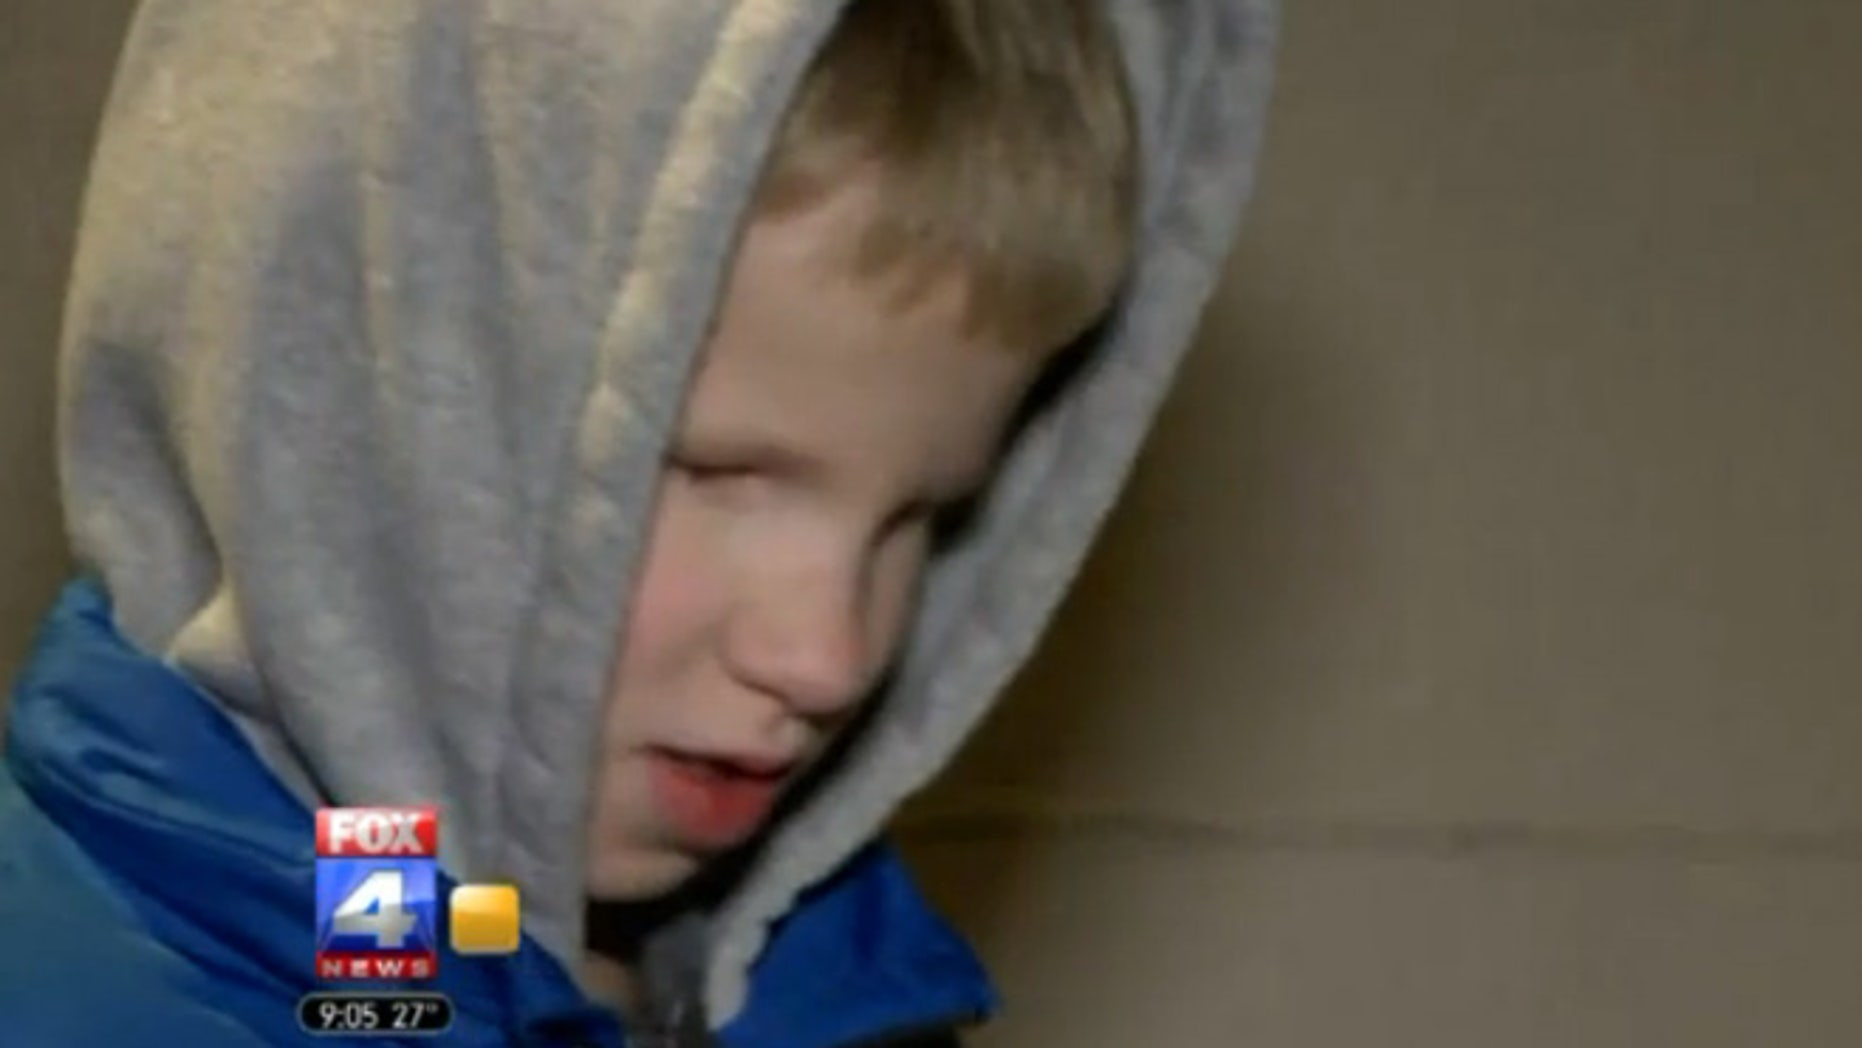 Dakota Nafzinger, who was born without eyes, was reportedly given a pool noodle to hold instead of his cane